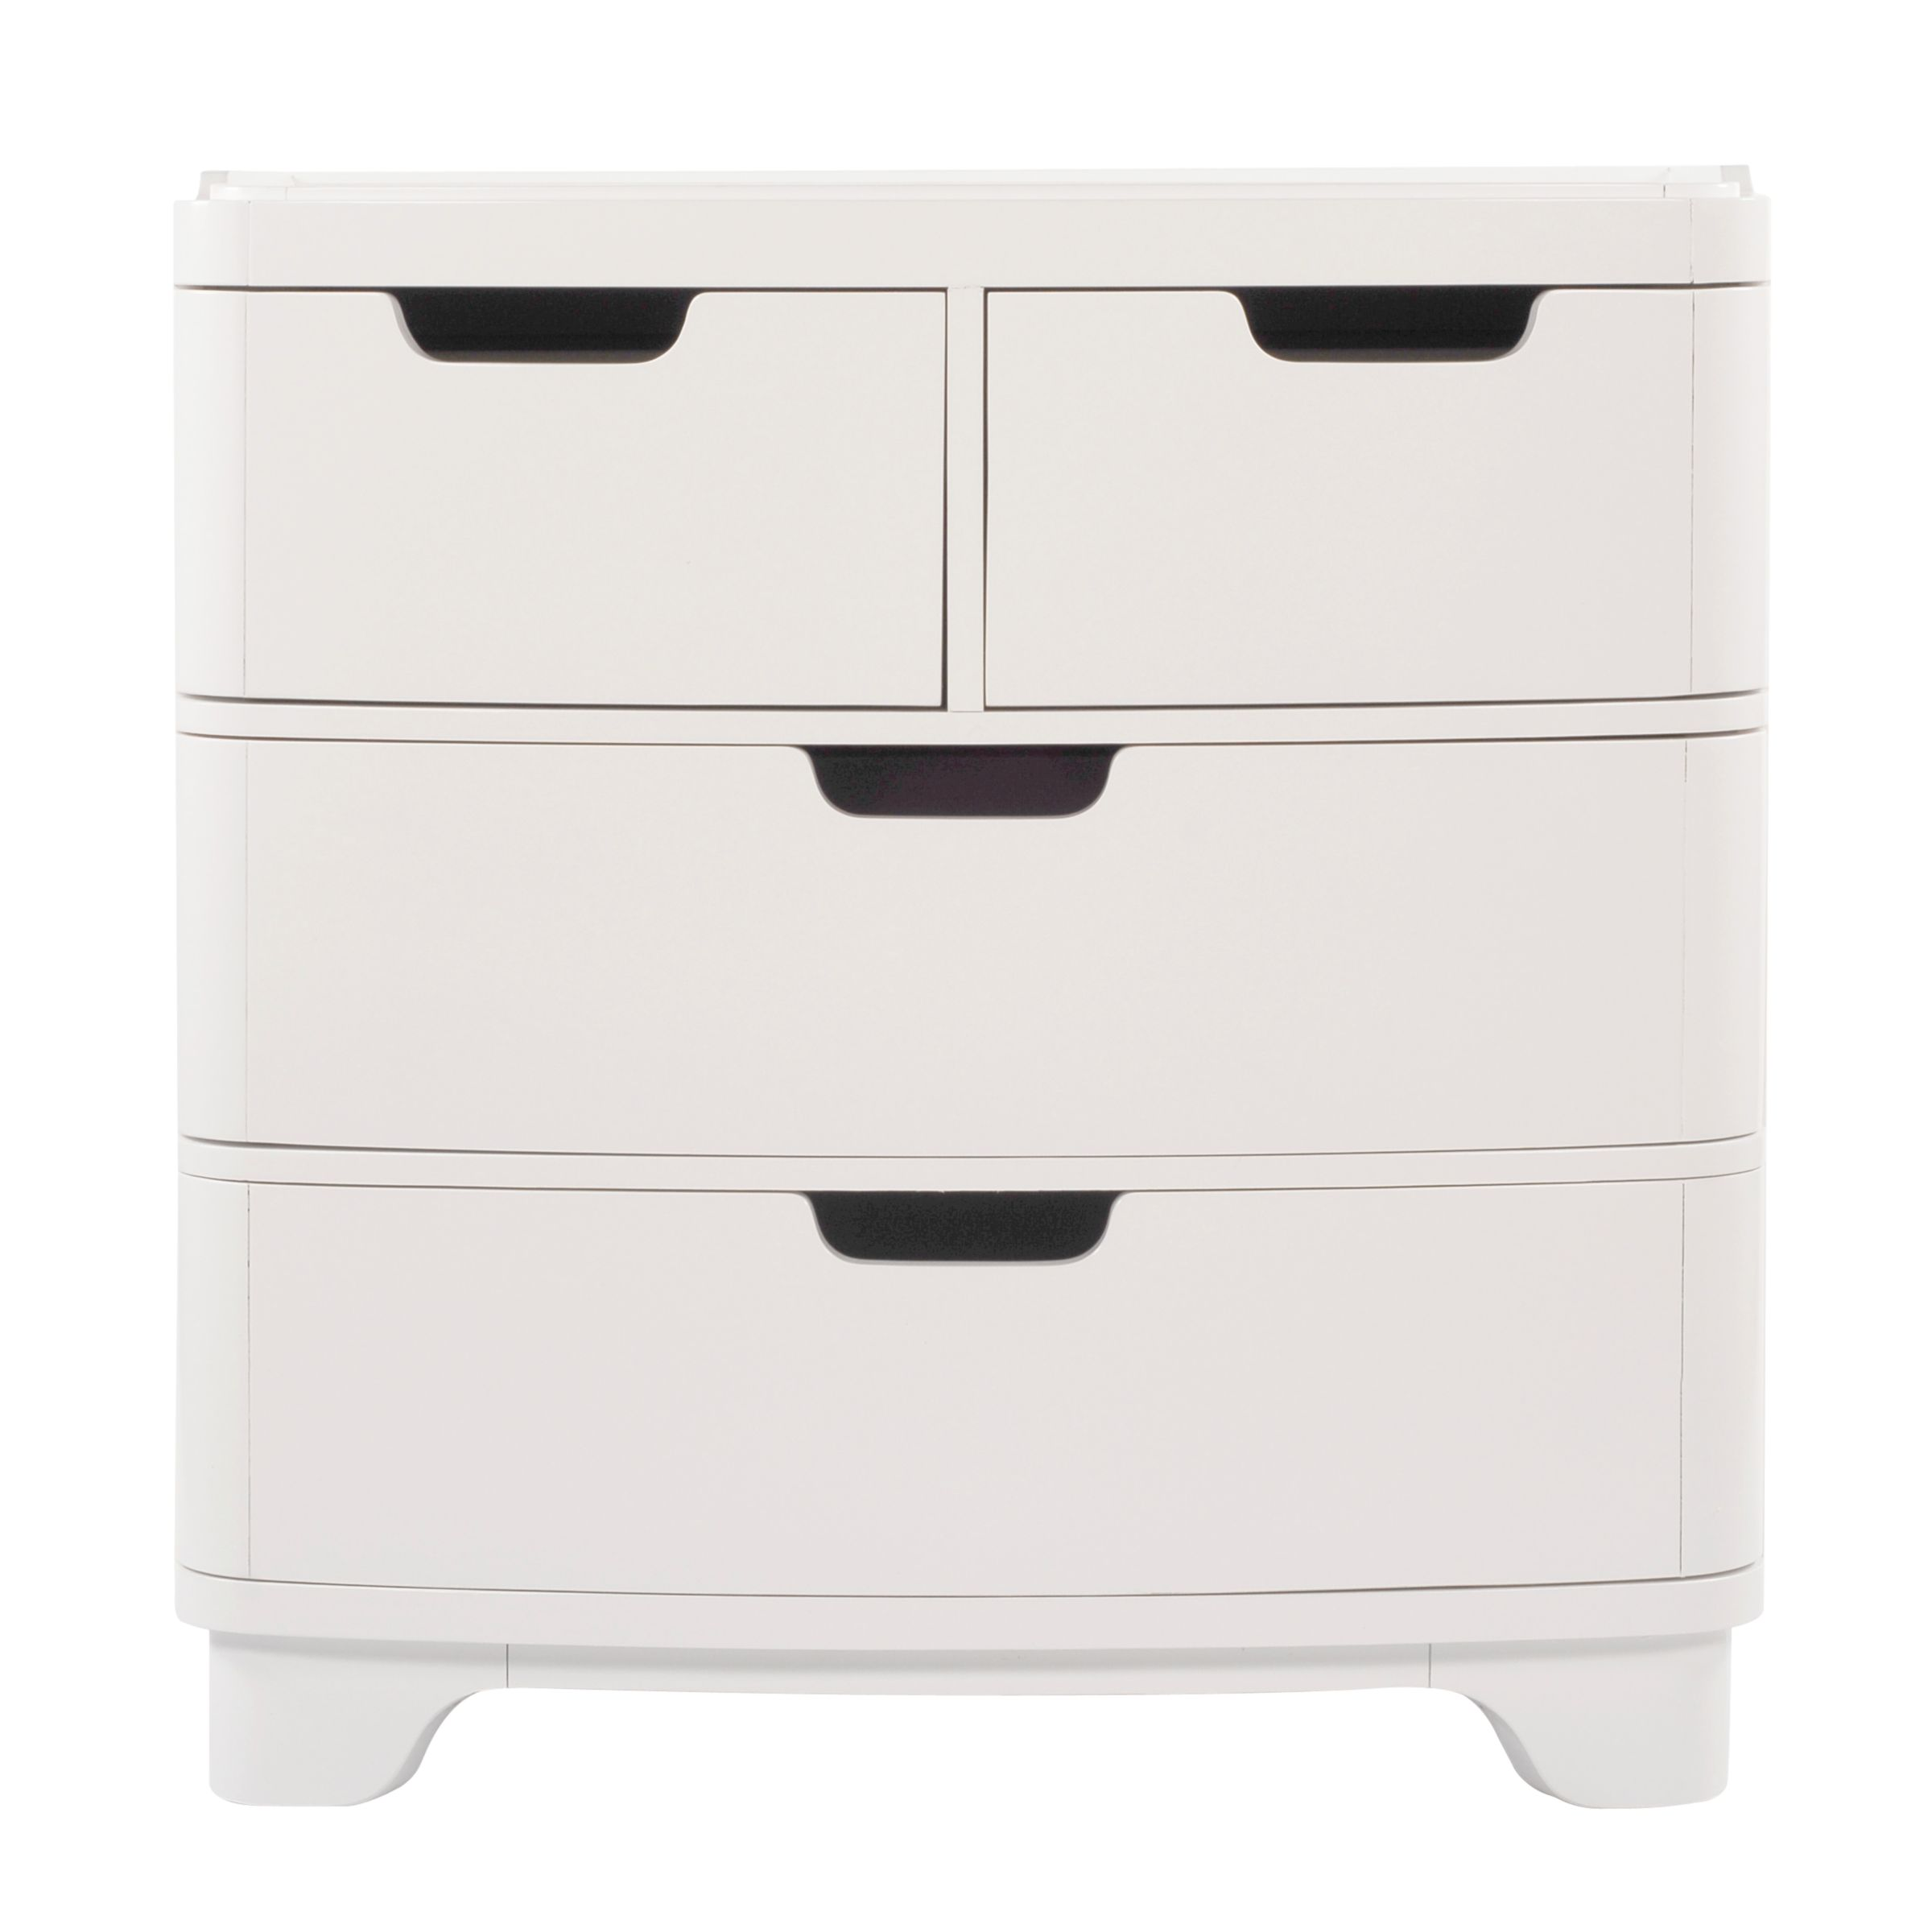 bloom Luxo Dresser and Changer, Coconut White at John Lewis